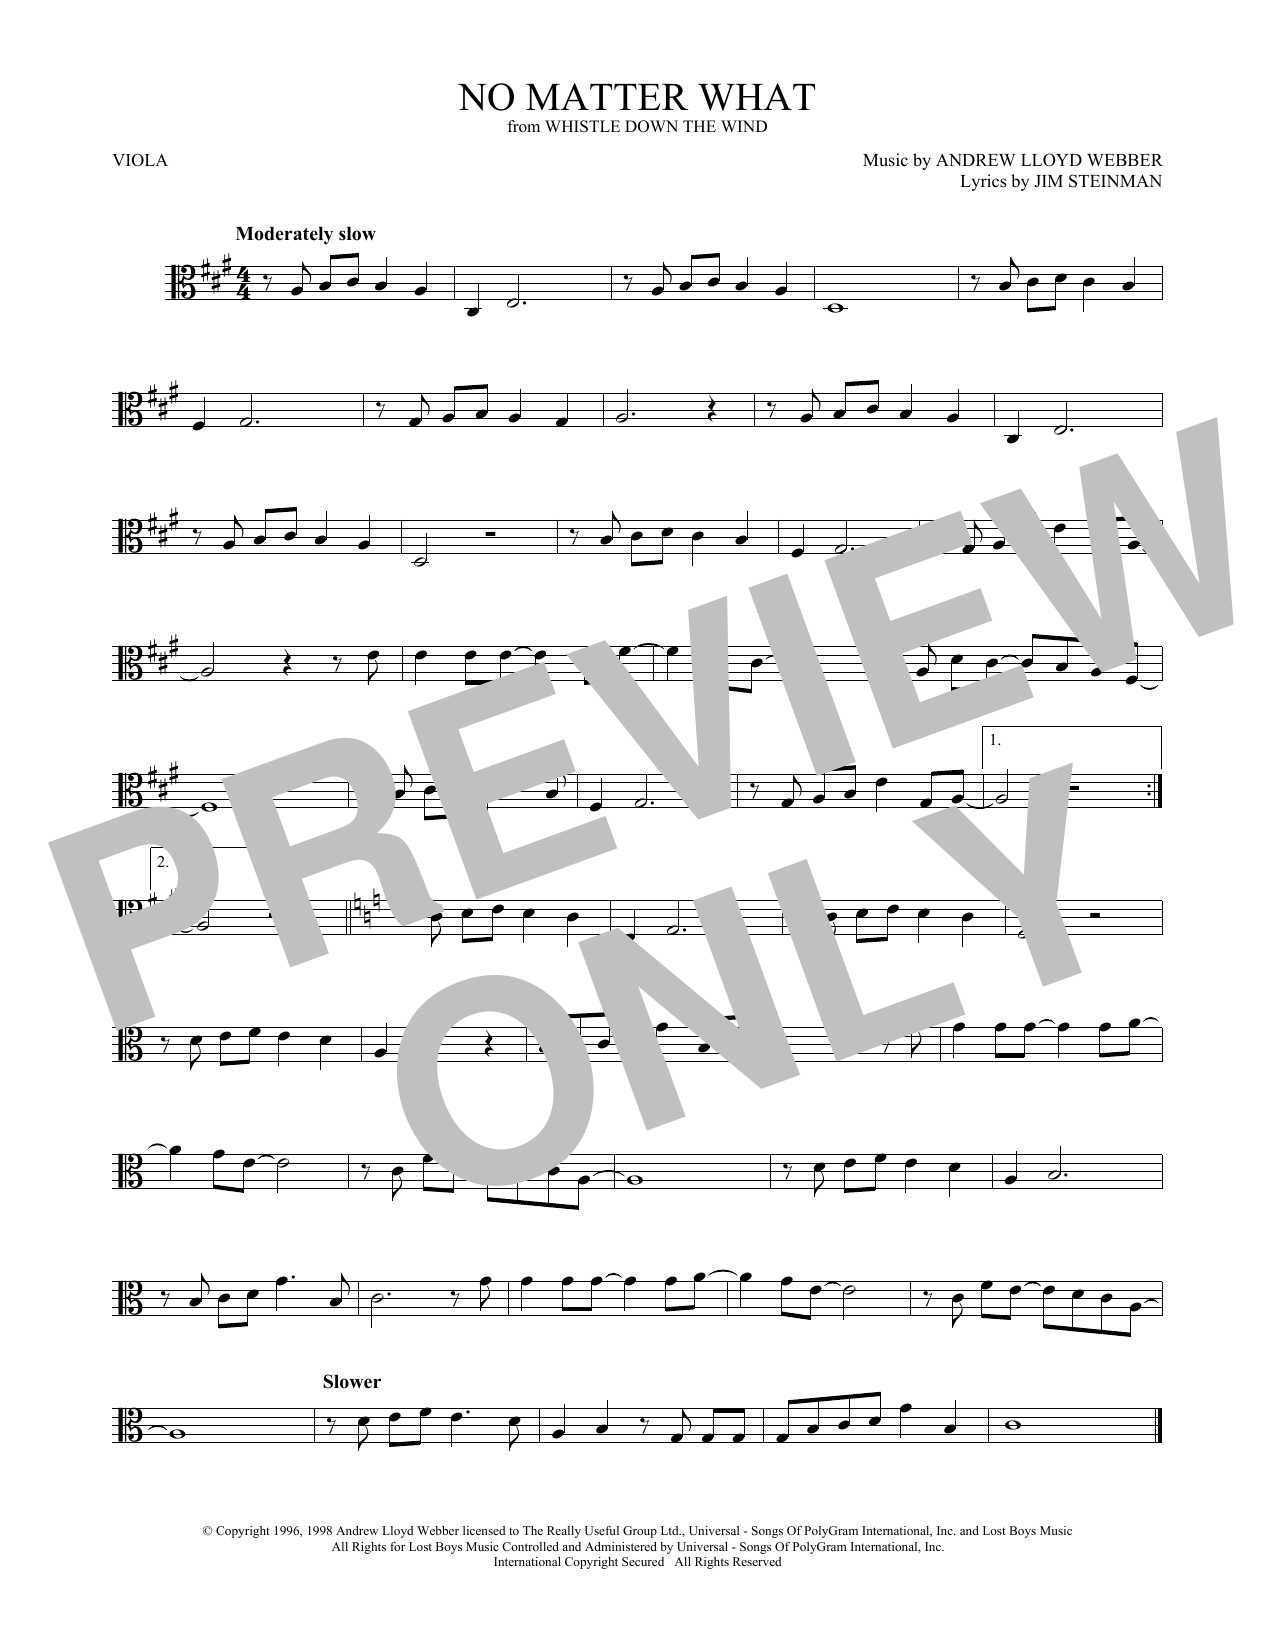 No Matter What (from Whistle Down the Wind) (Viola Solo)